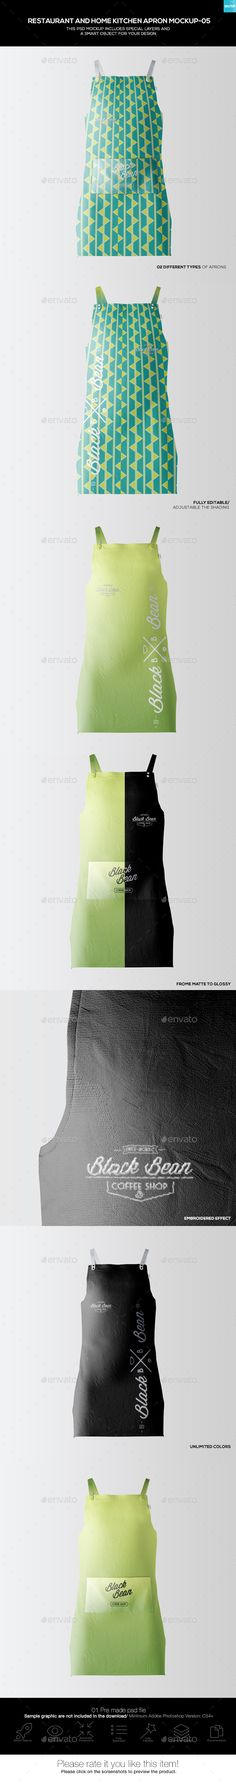 Restaurant and Home Kietchen Apron #Mockup-05 - Miscellaneous Apparel Download here:  https://graphicriver.net/item/restaurant-and-home-kietchen-apron-mockup05/19477263?ref=alena994